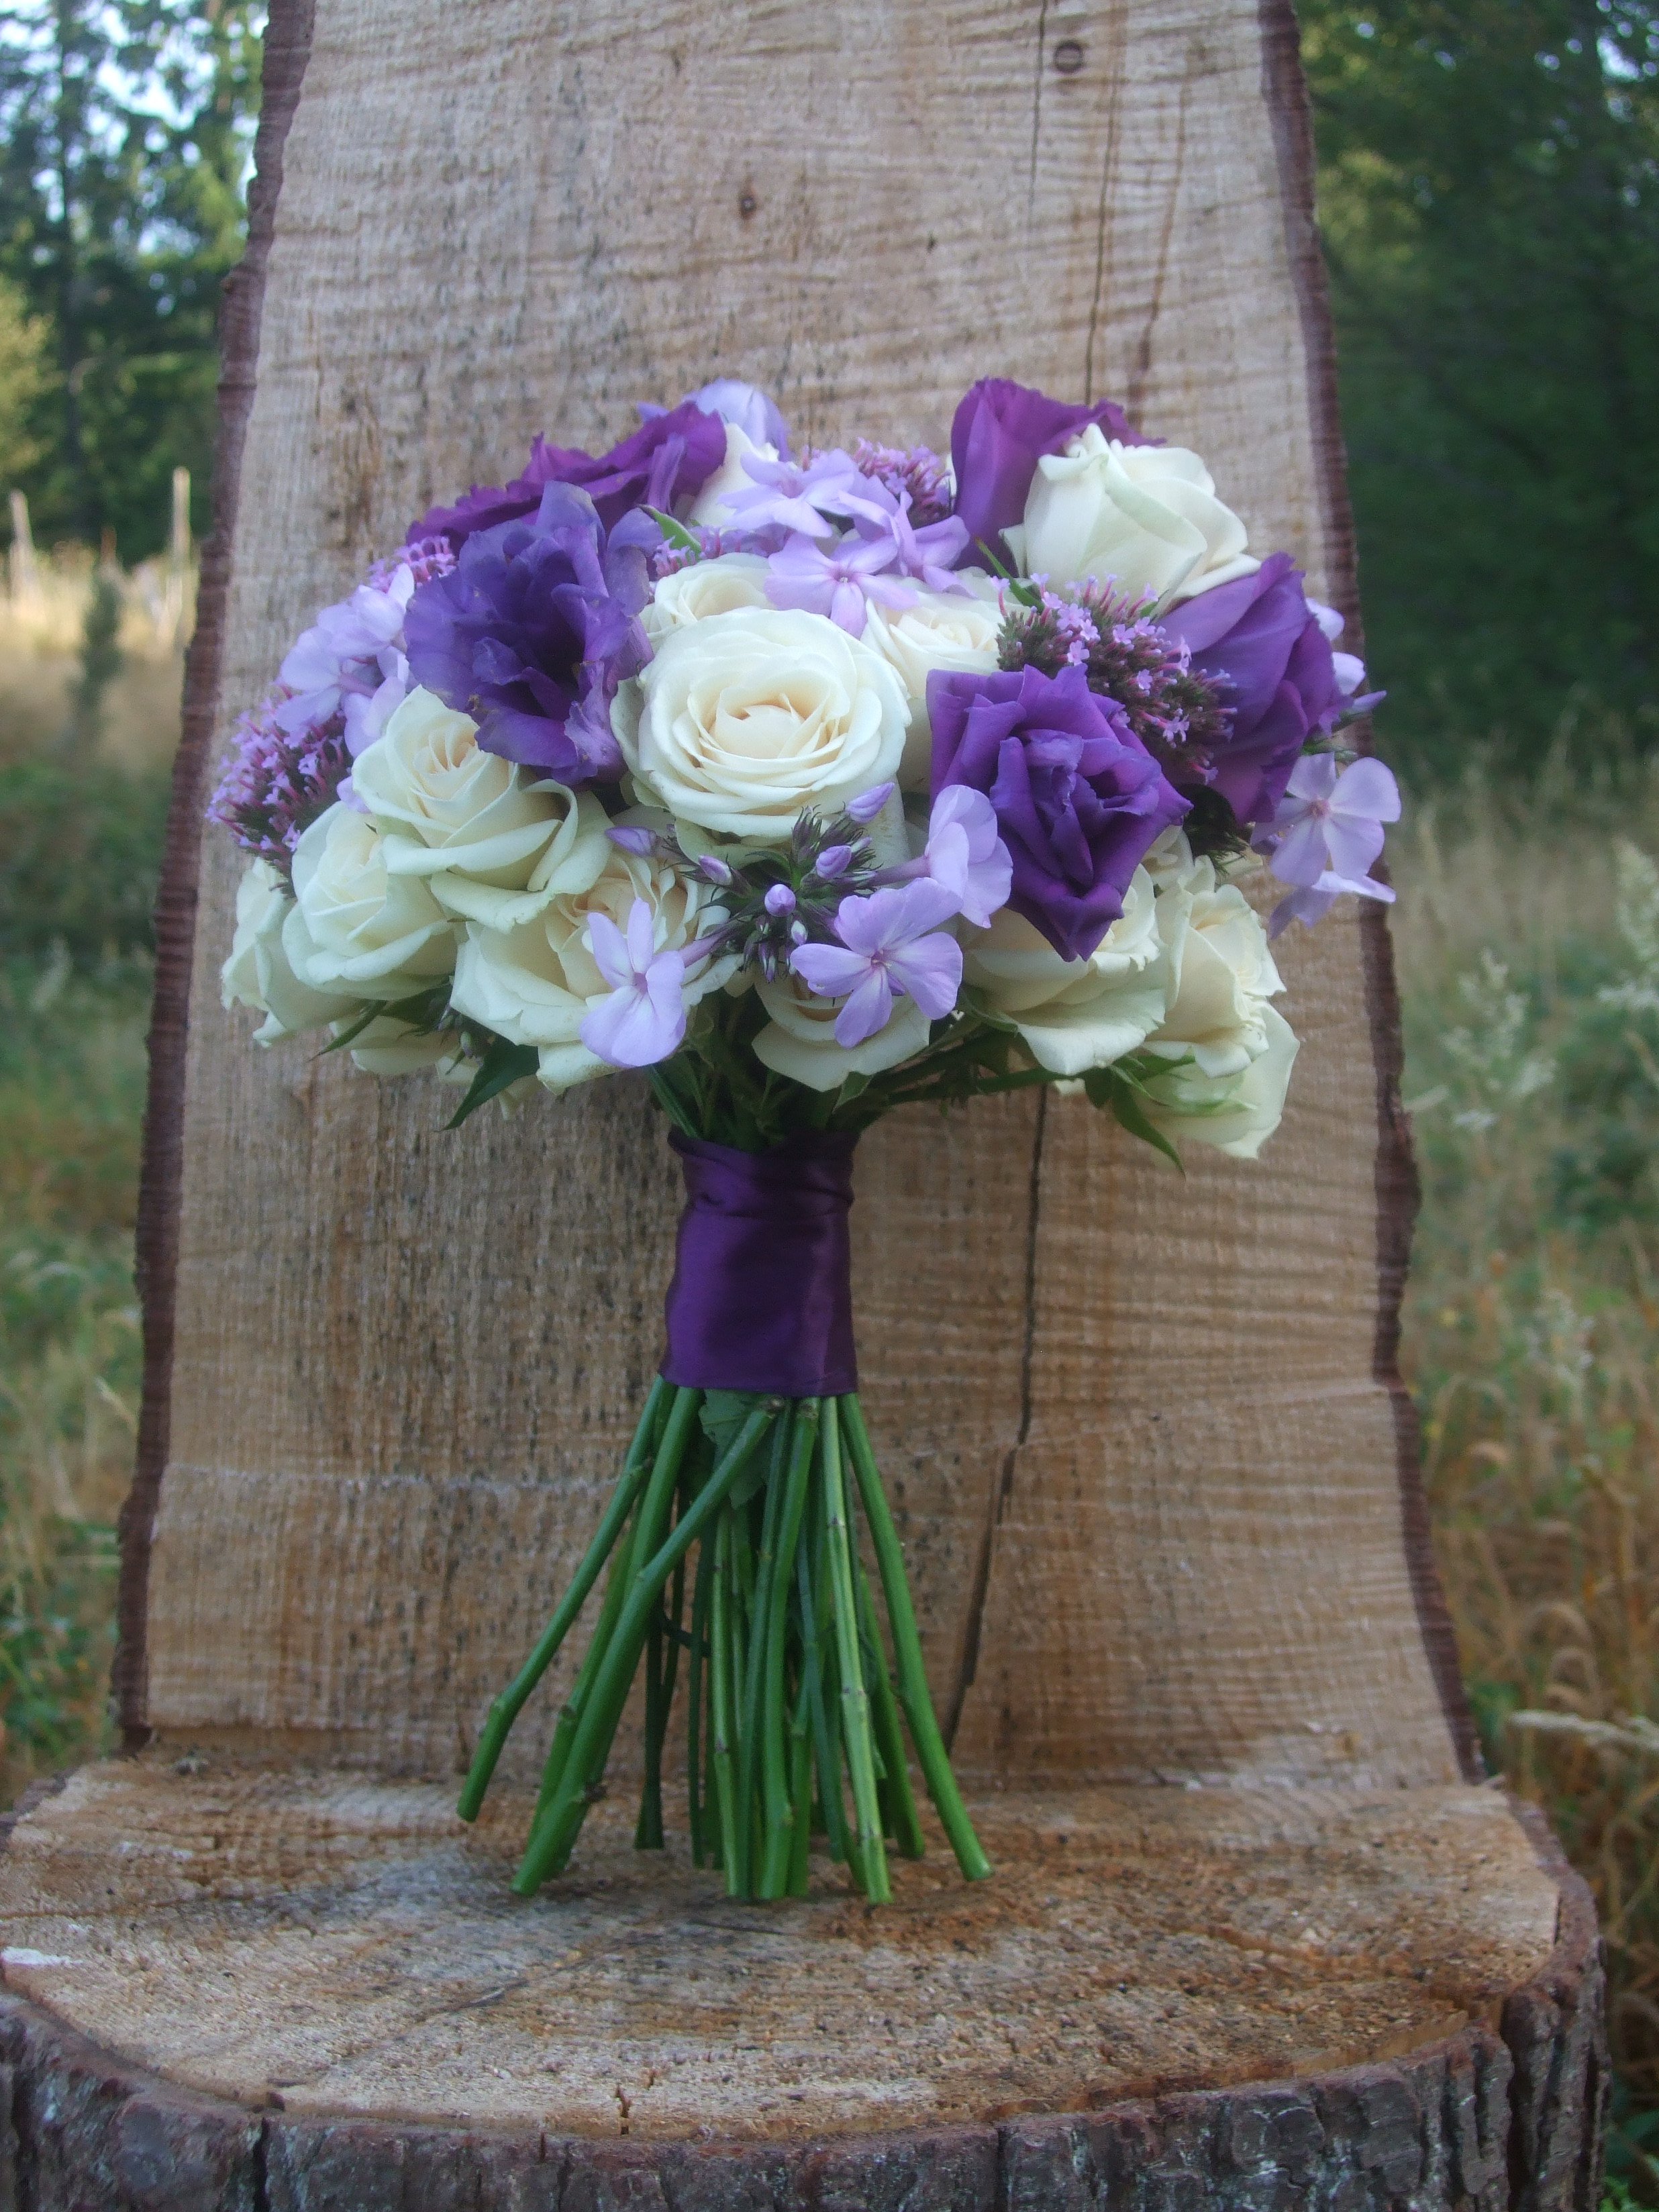 Image of bridal bouquet by Vases Wild in purple and cream theme